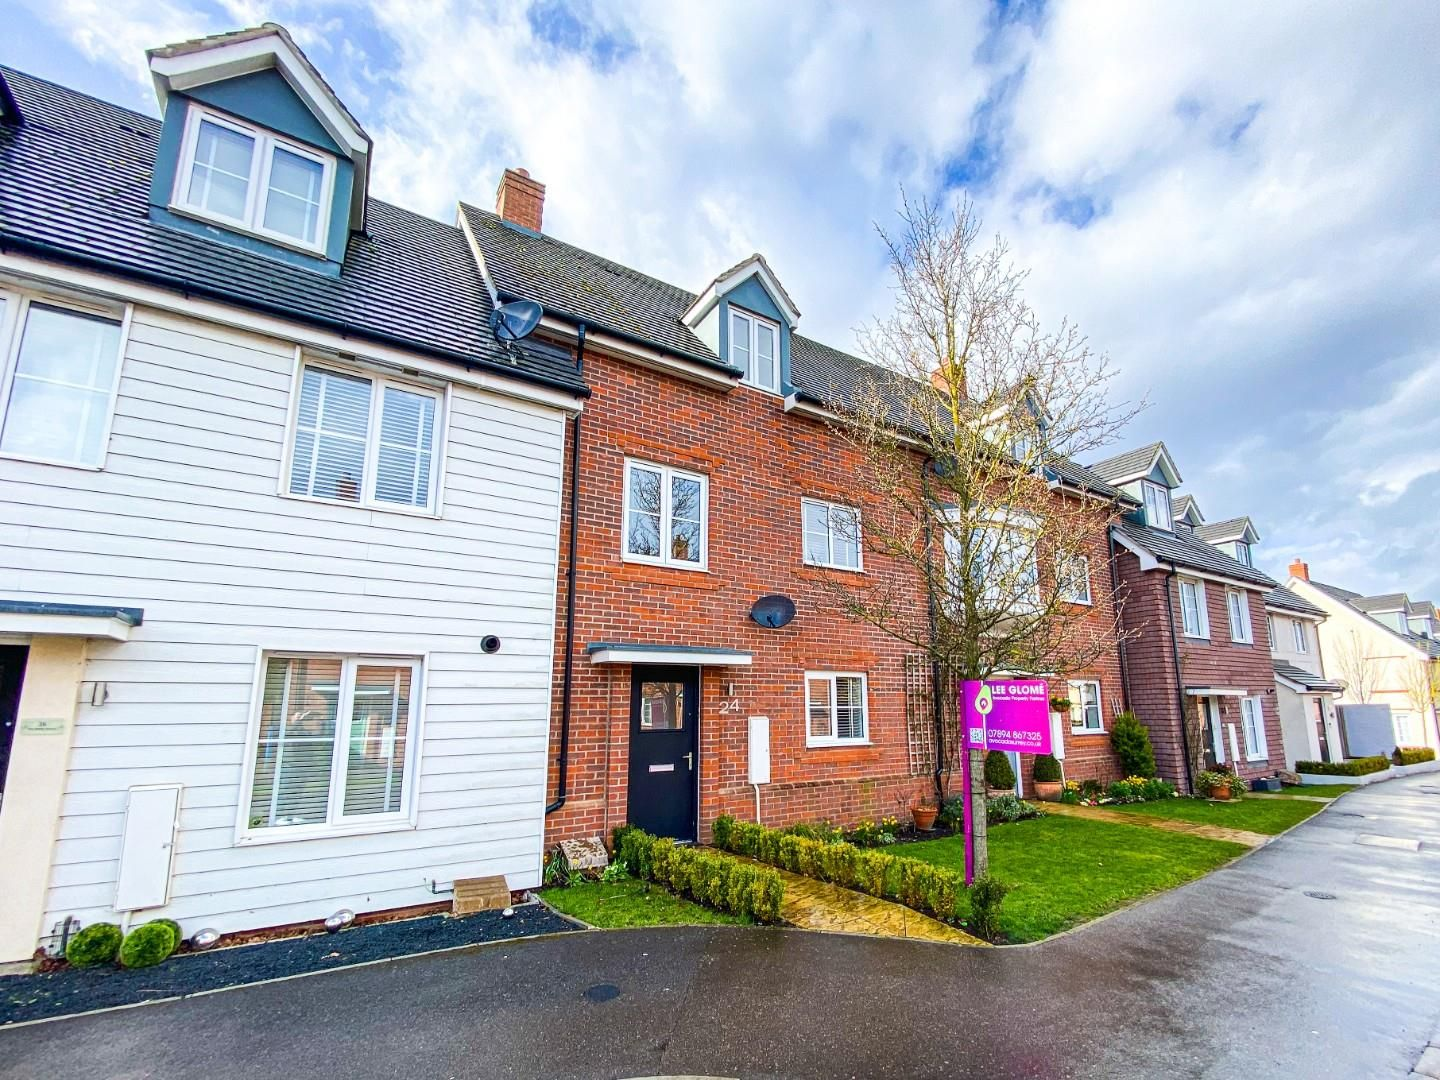 2 bed house for sale in Church Crookham, GU52